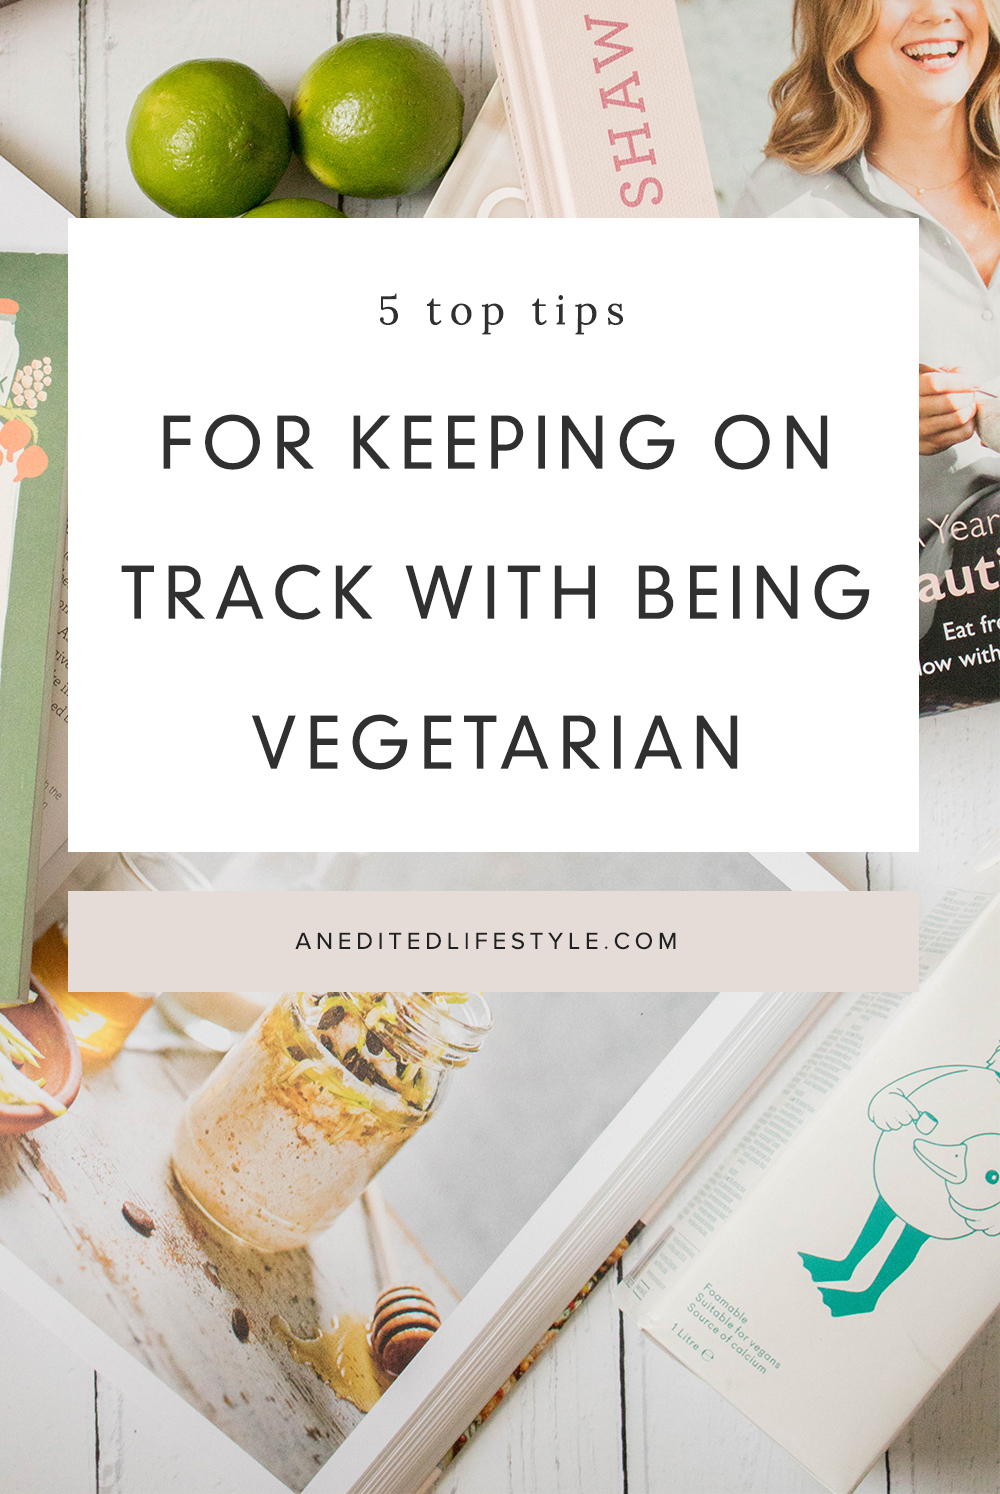 an edited lifestyle being vegetarian